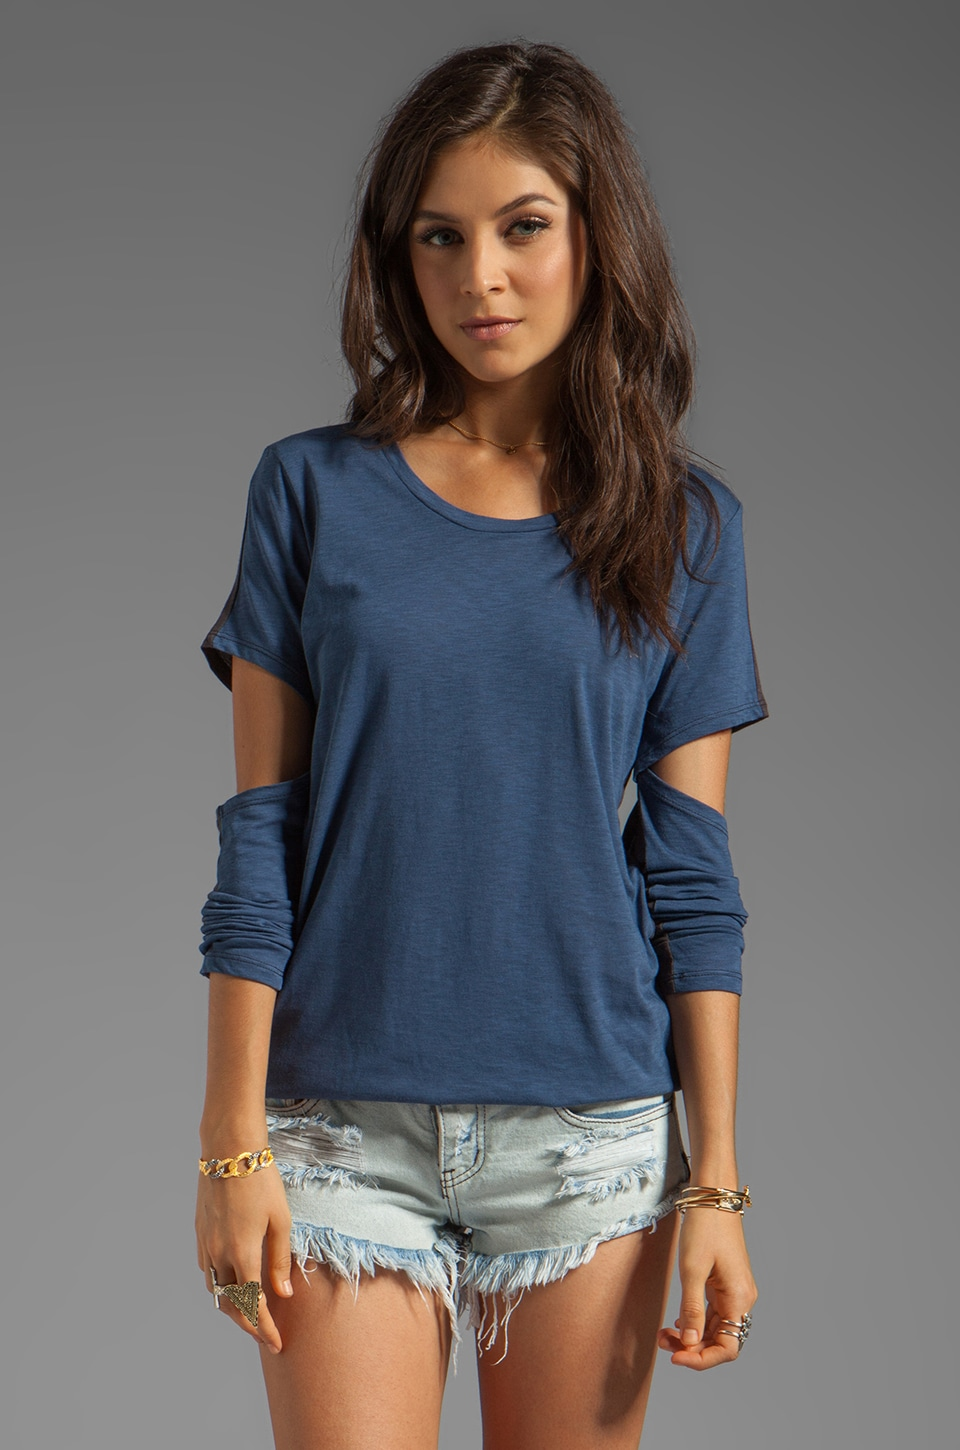 Blue Life Scoop Neck Cut Out Sleeve Tee in Cadette Combo